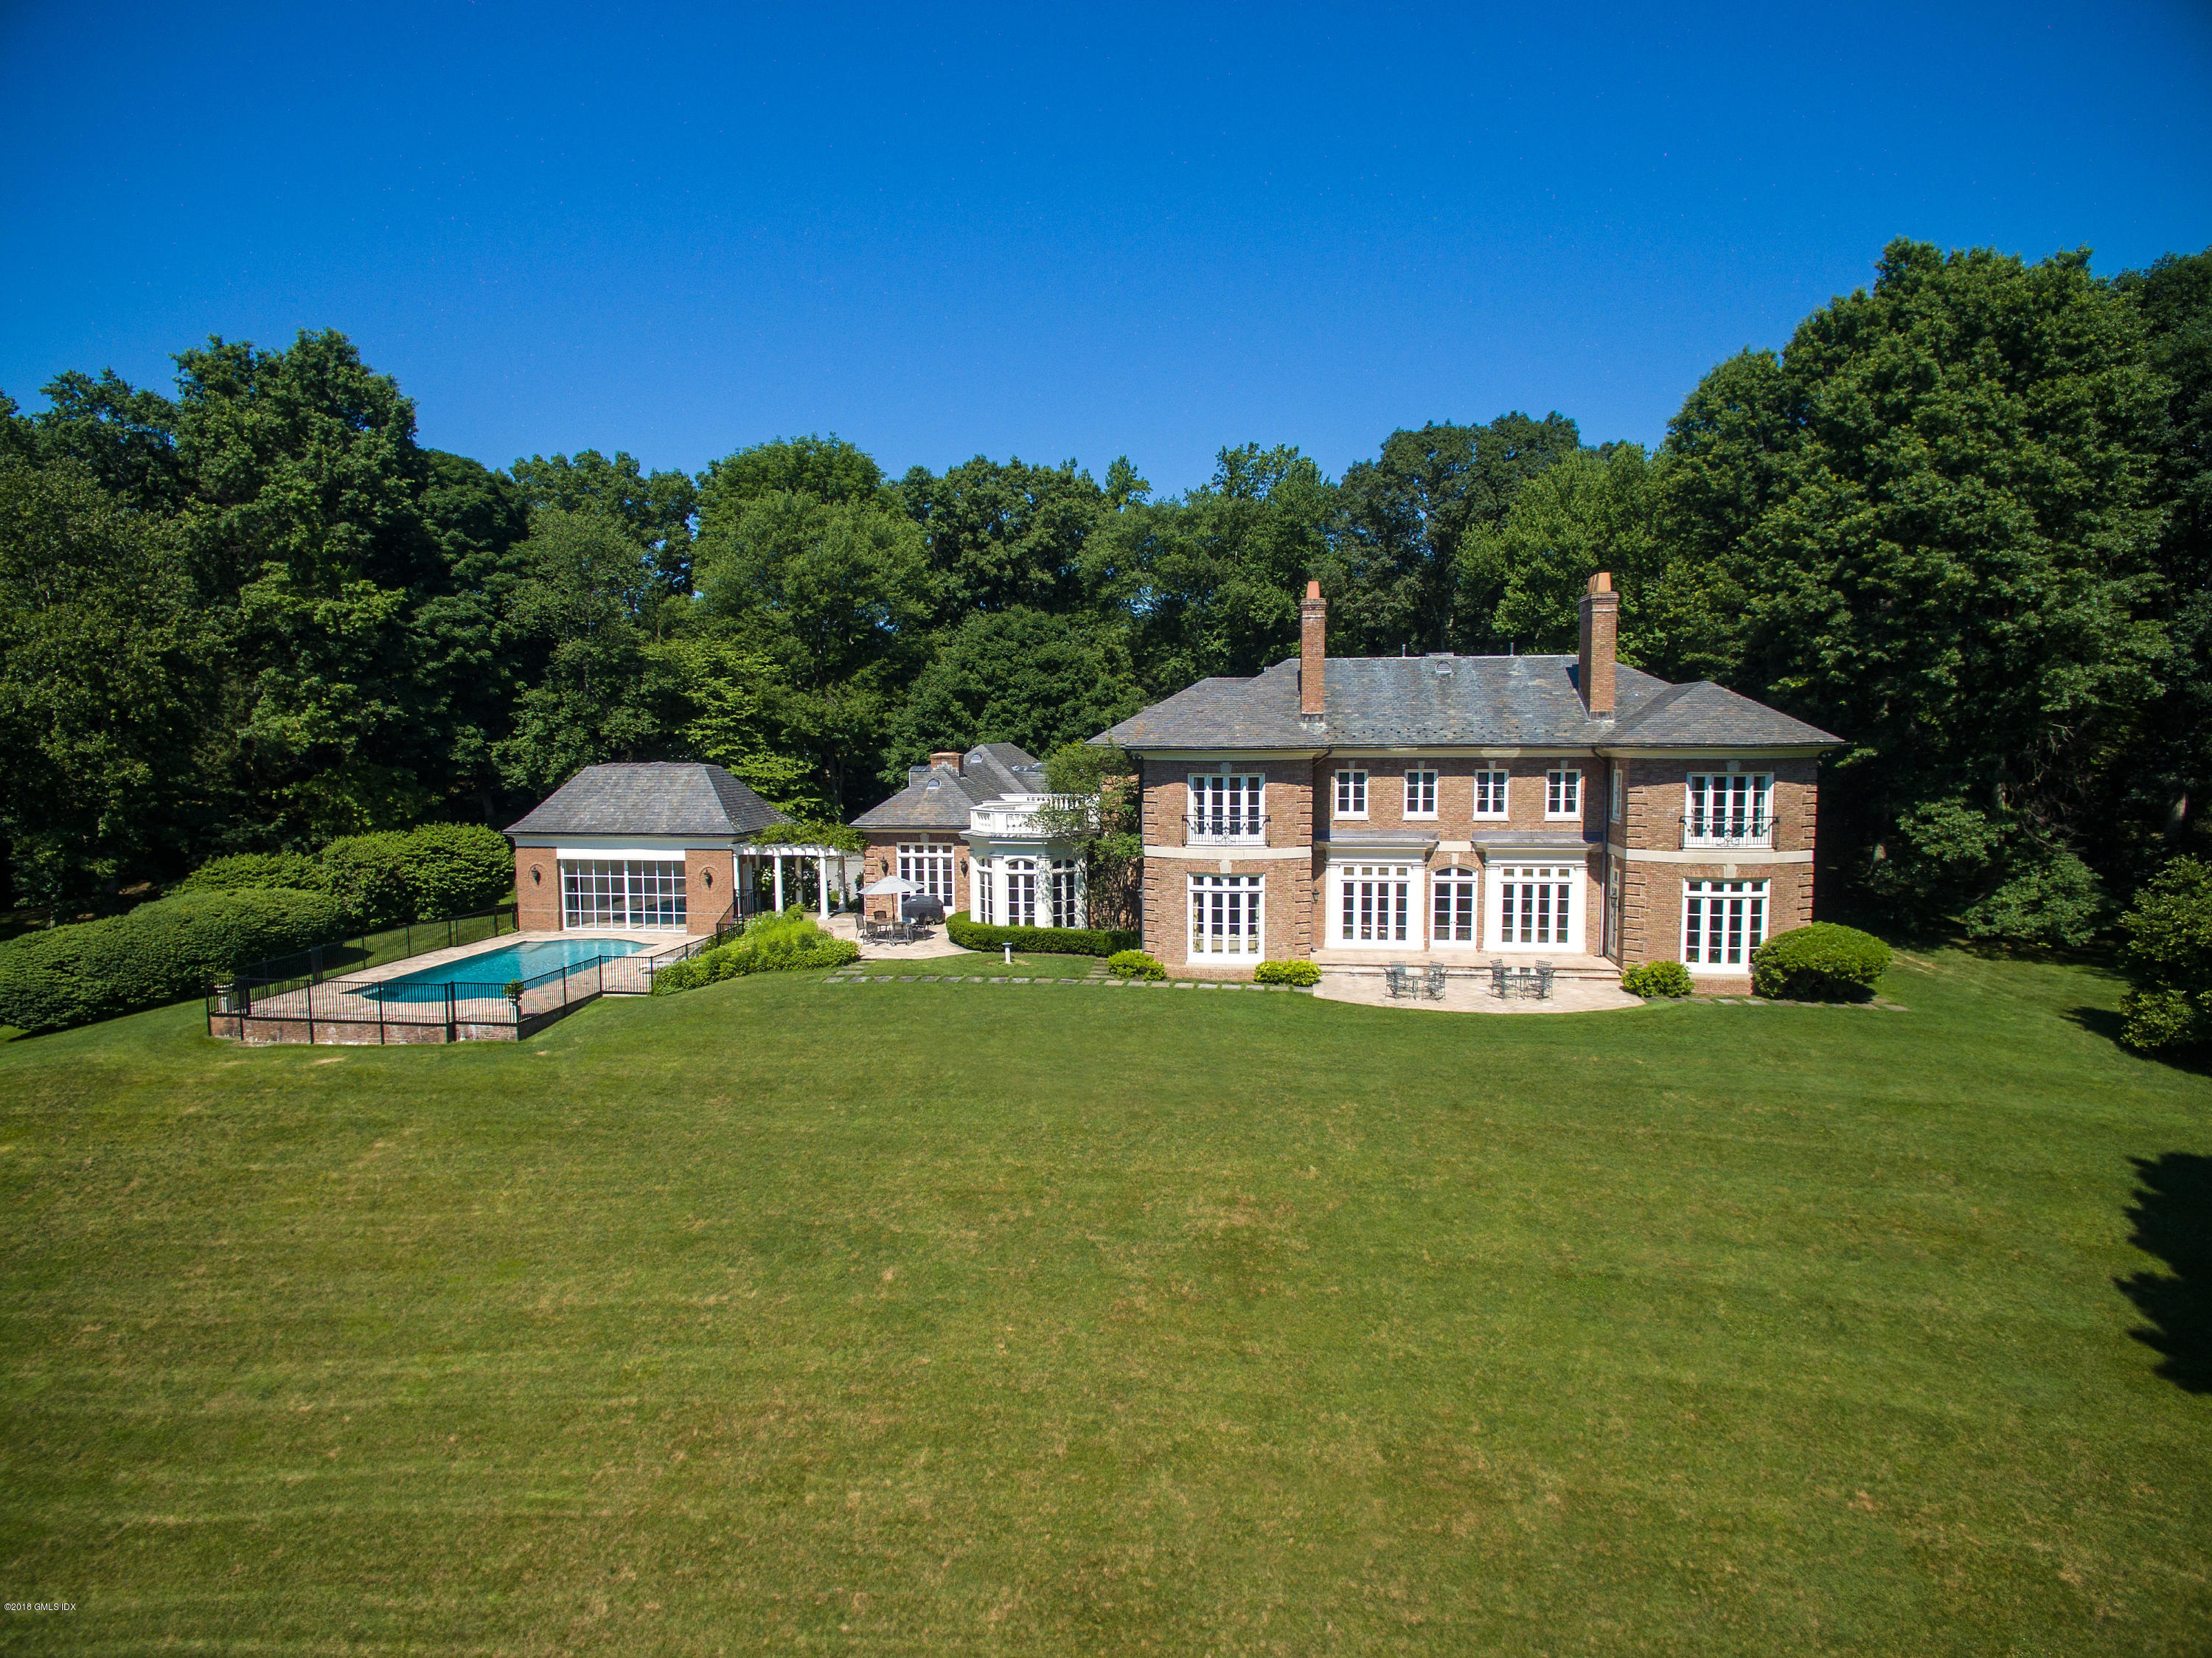 11 Bayberry Lane,Greenwich,Connecticut 06831,7 Bedrooms Bedrooms,6 BathroomsBathrooms,Single family,Bayberry,104766